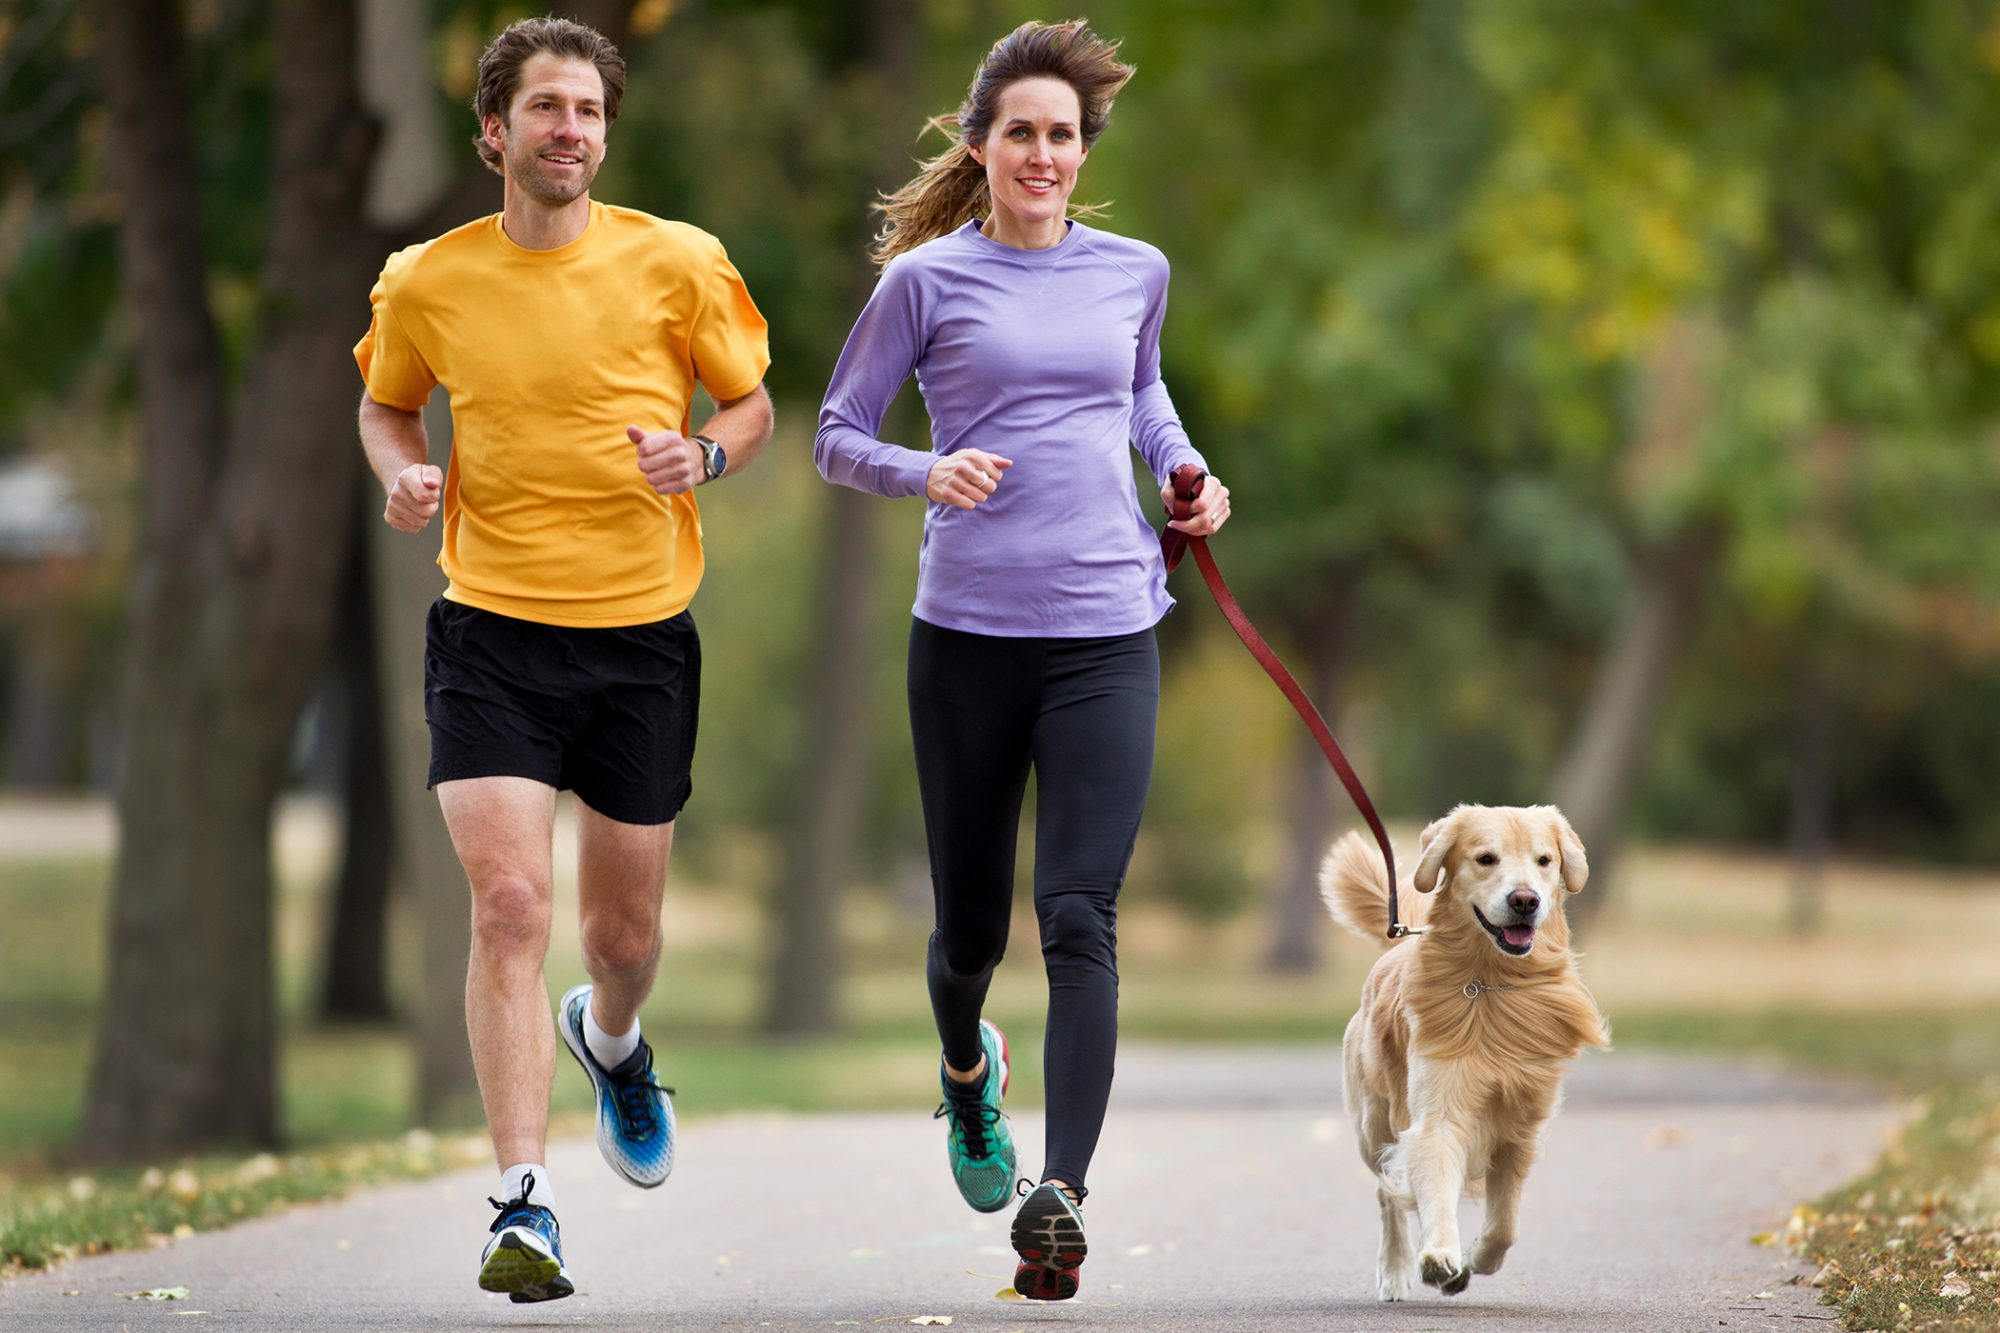 Joggers and Golden Retriever Running on a Paved Trail